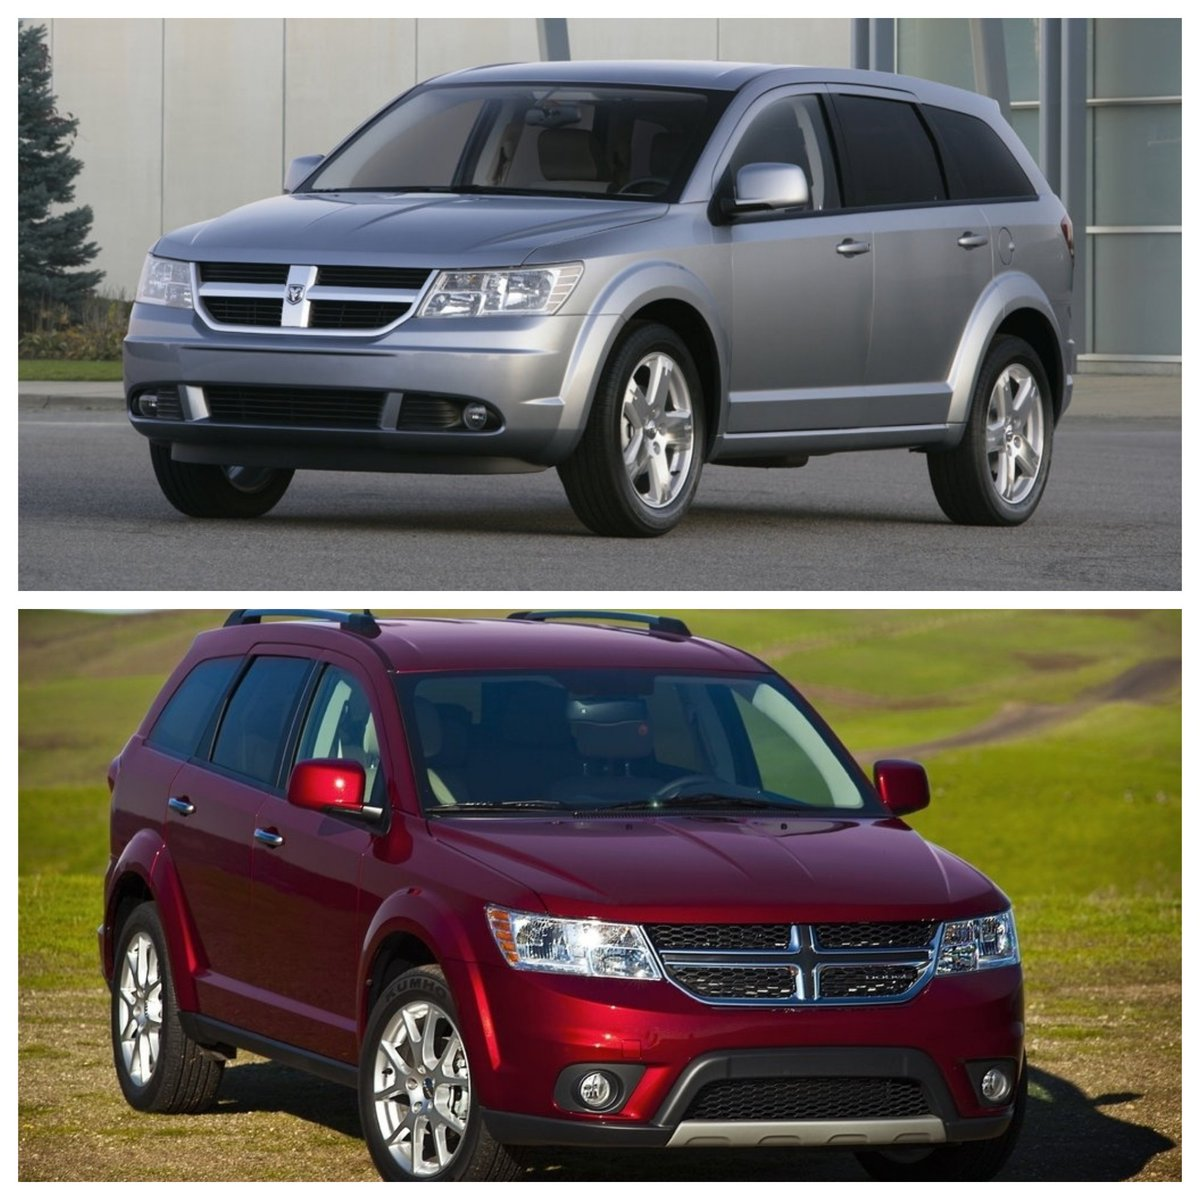 Above We Have The 2009 #Dodge #Journey And Below Is The Updated 2011. Which  One Would You Rather Take A Road Trip In? Tell Us Below!